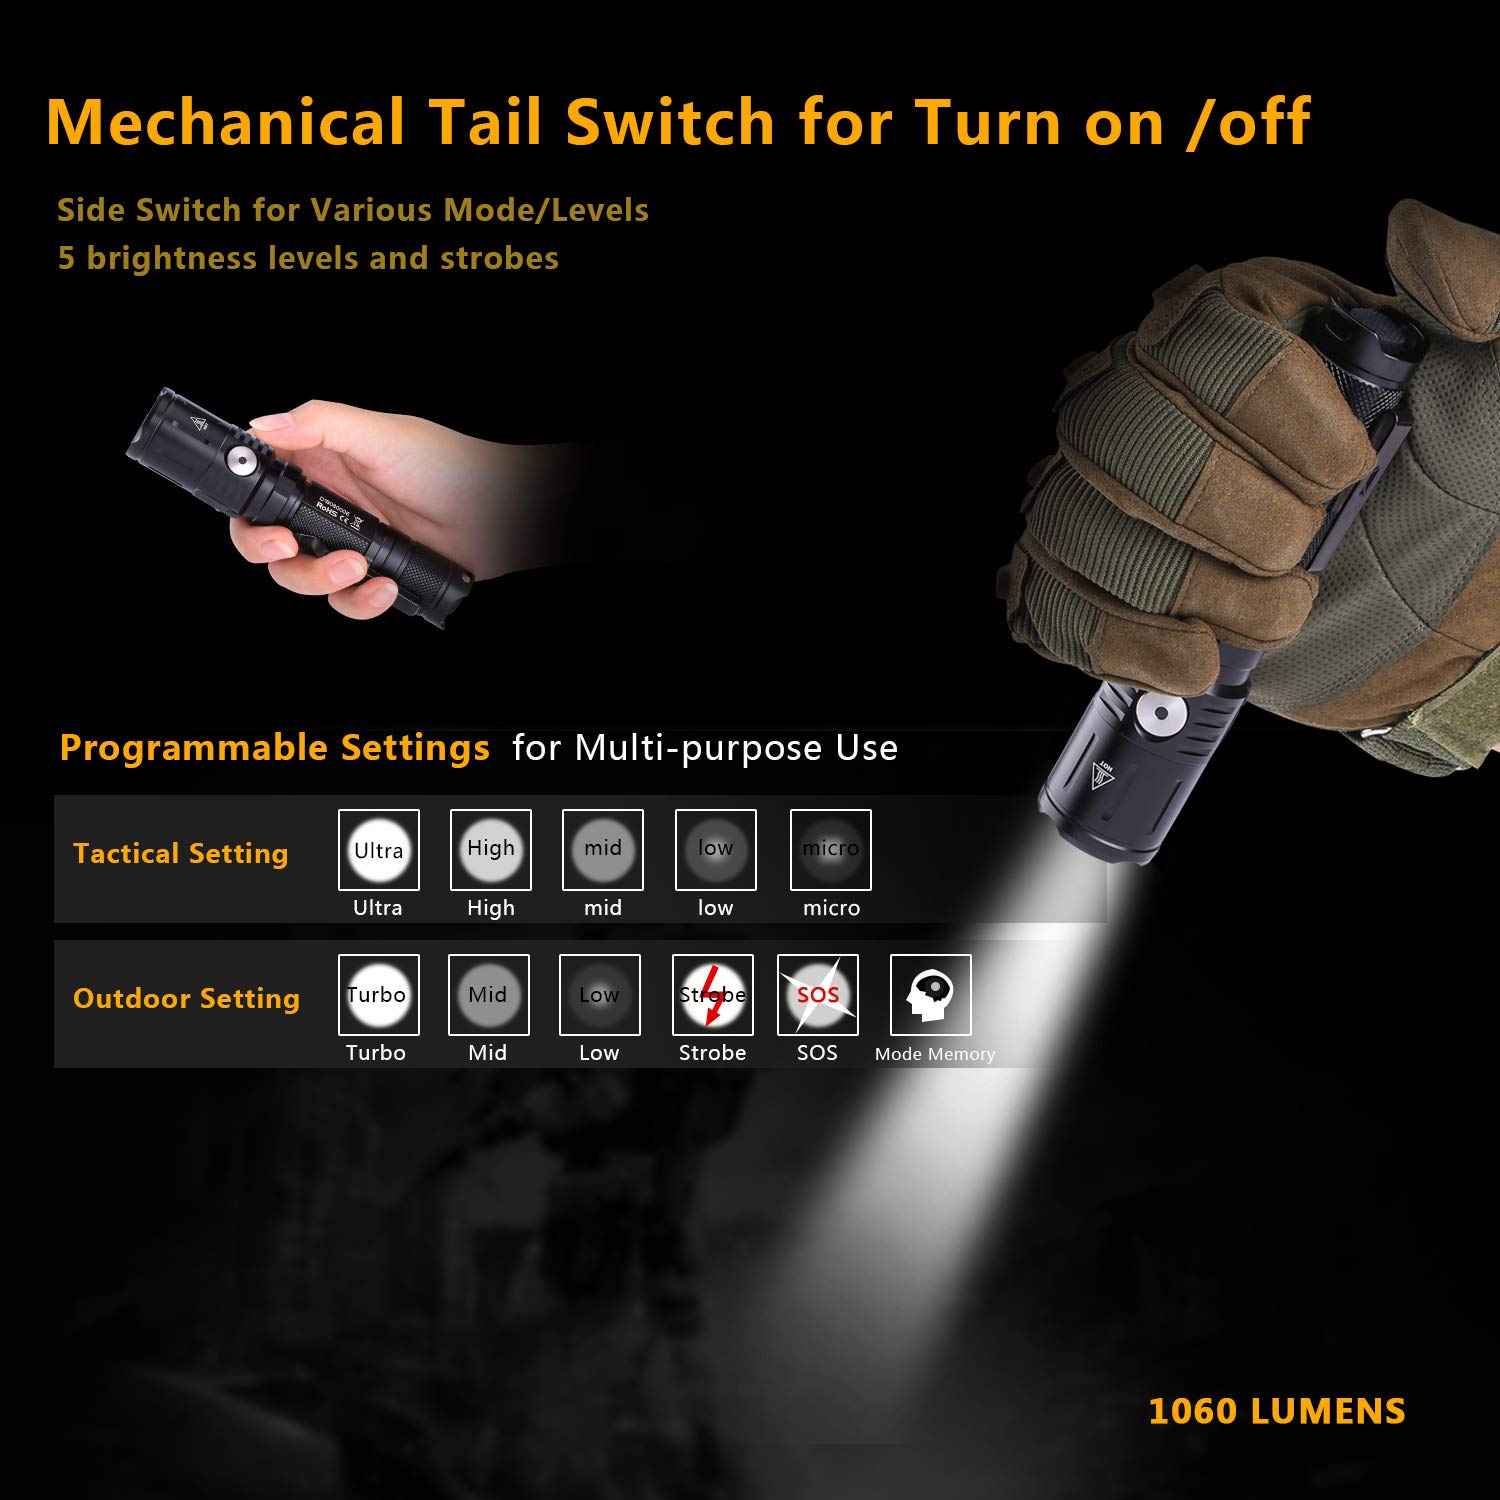 Black Soonfire MX Series Tactical Flashlight 1060 Lumens Built-in a fast charging Micro-USB port 5 brightness Cree LED Waterproof Flashlight,18650 Battery and Holster Included